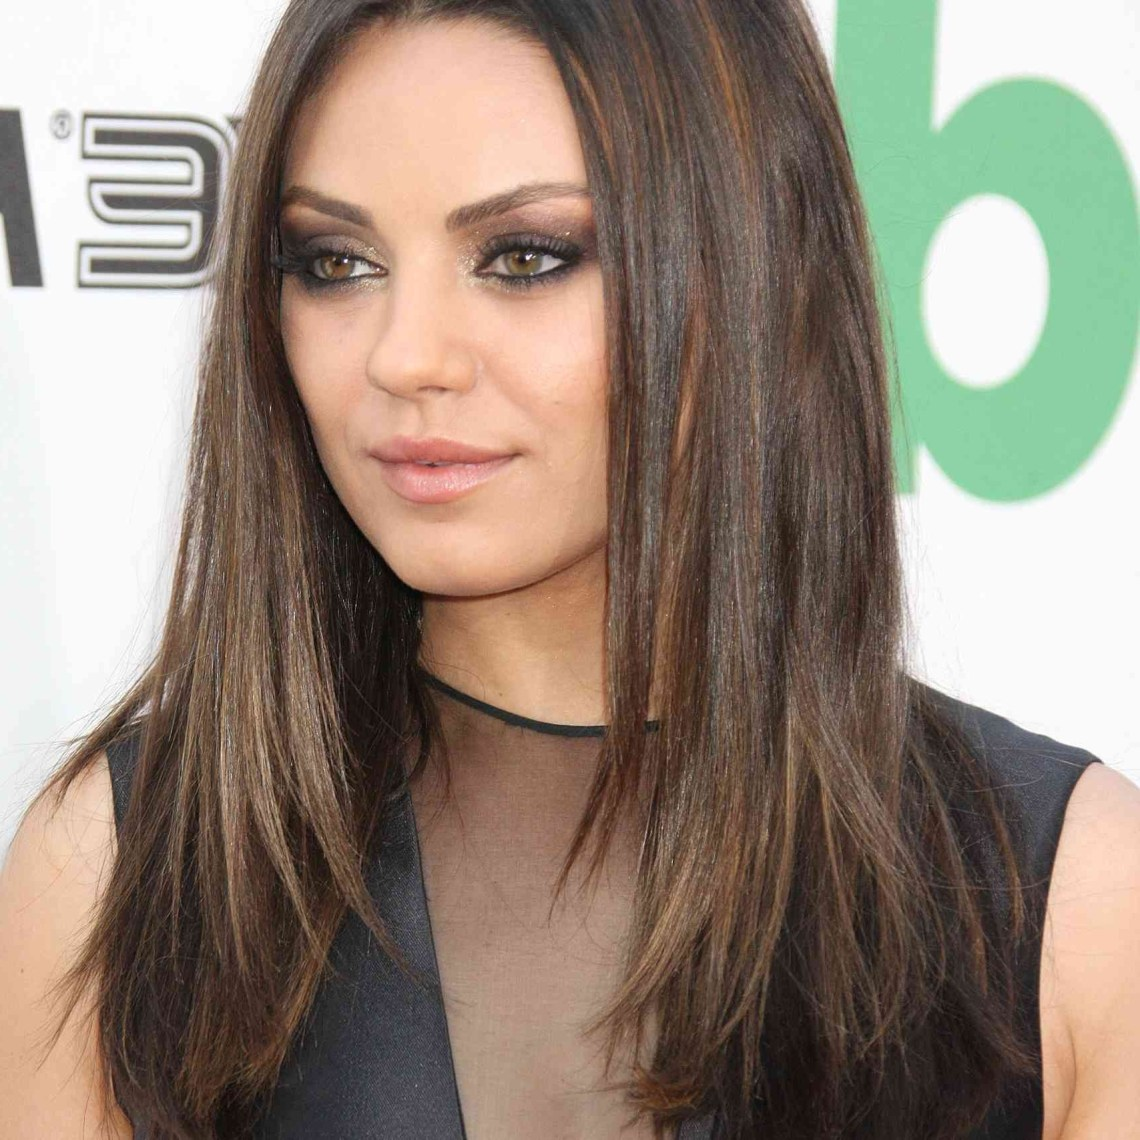 28 Of The Best Hairstyles For Round Faces 40+ Awesome Medium Length Hairstyles For Over 50 With Fat Face